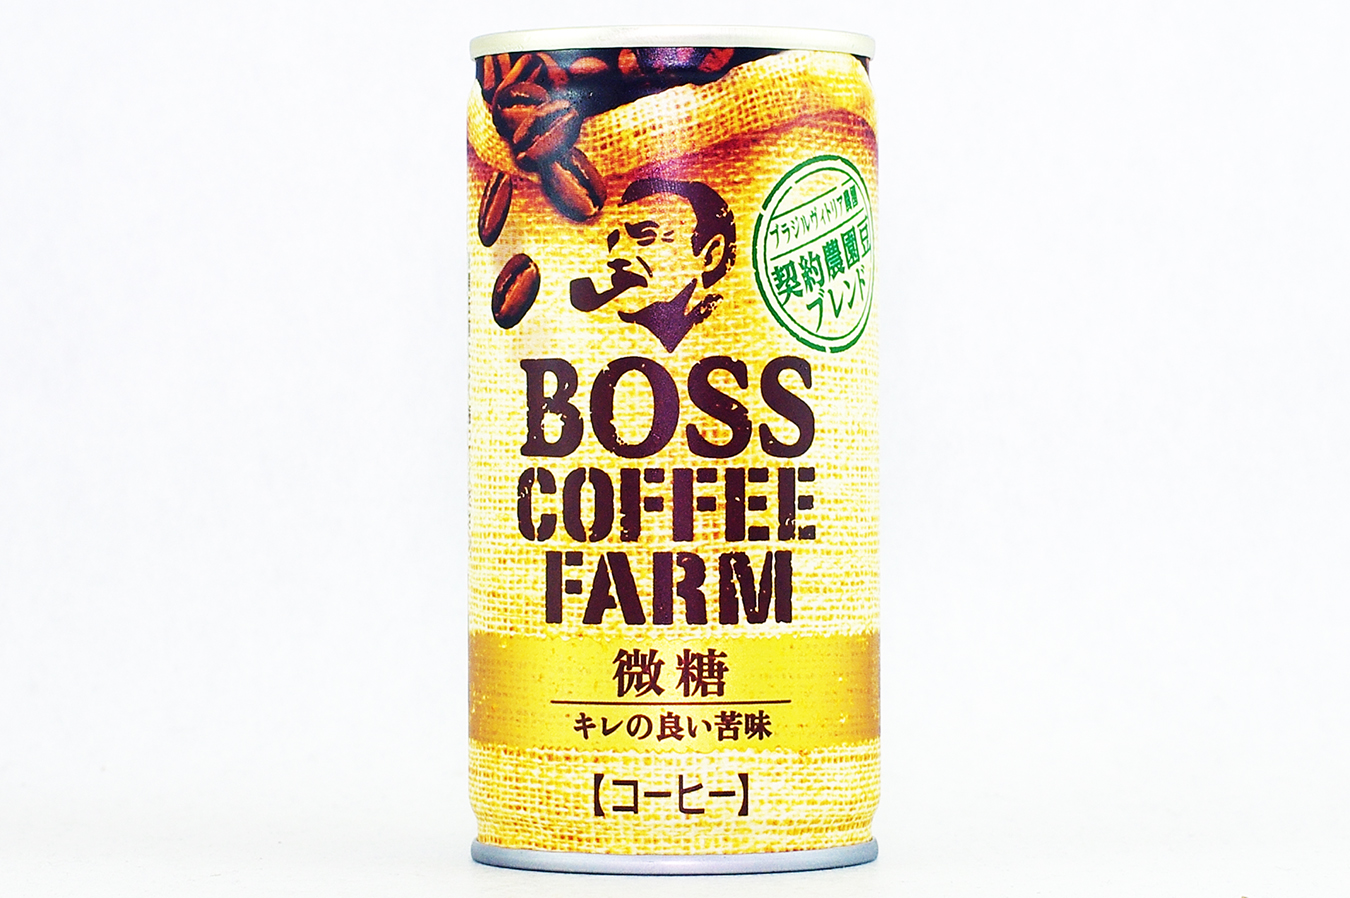 BOSS COFFEE FARM 微糖 2018年10月